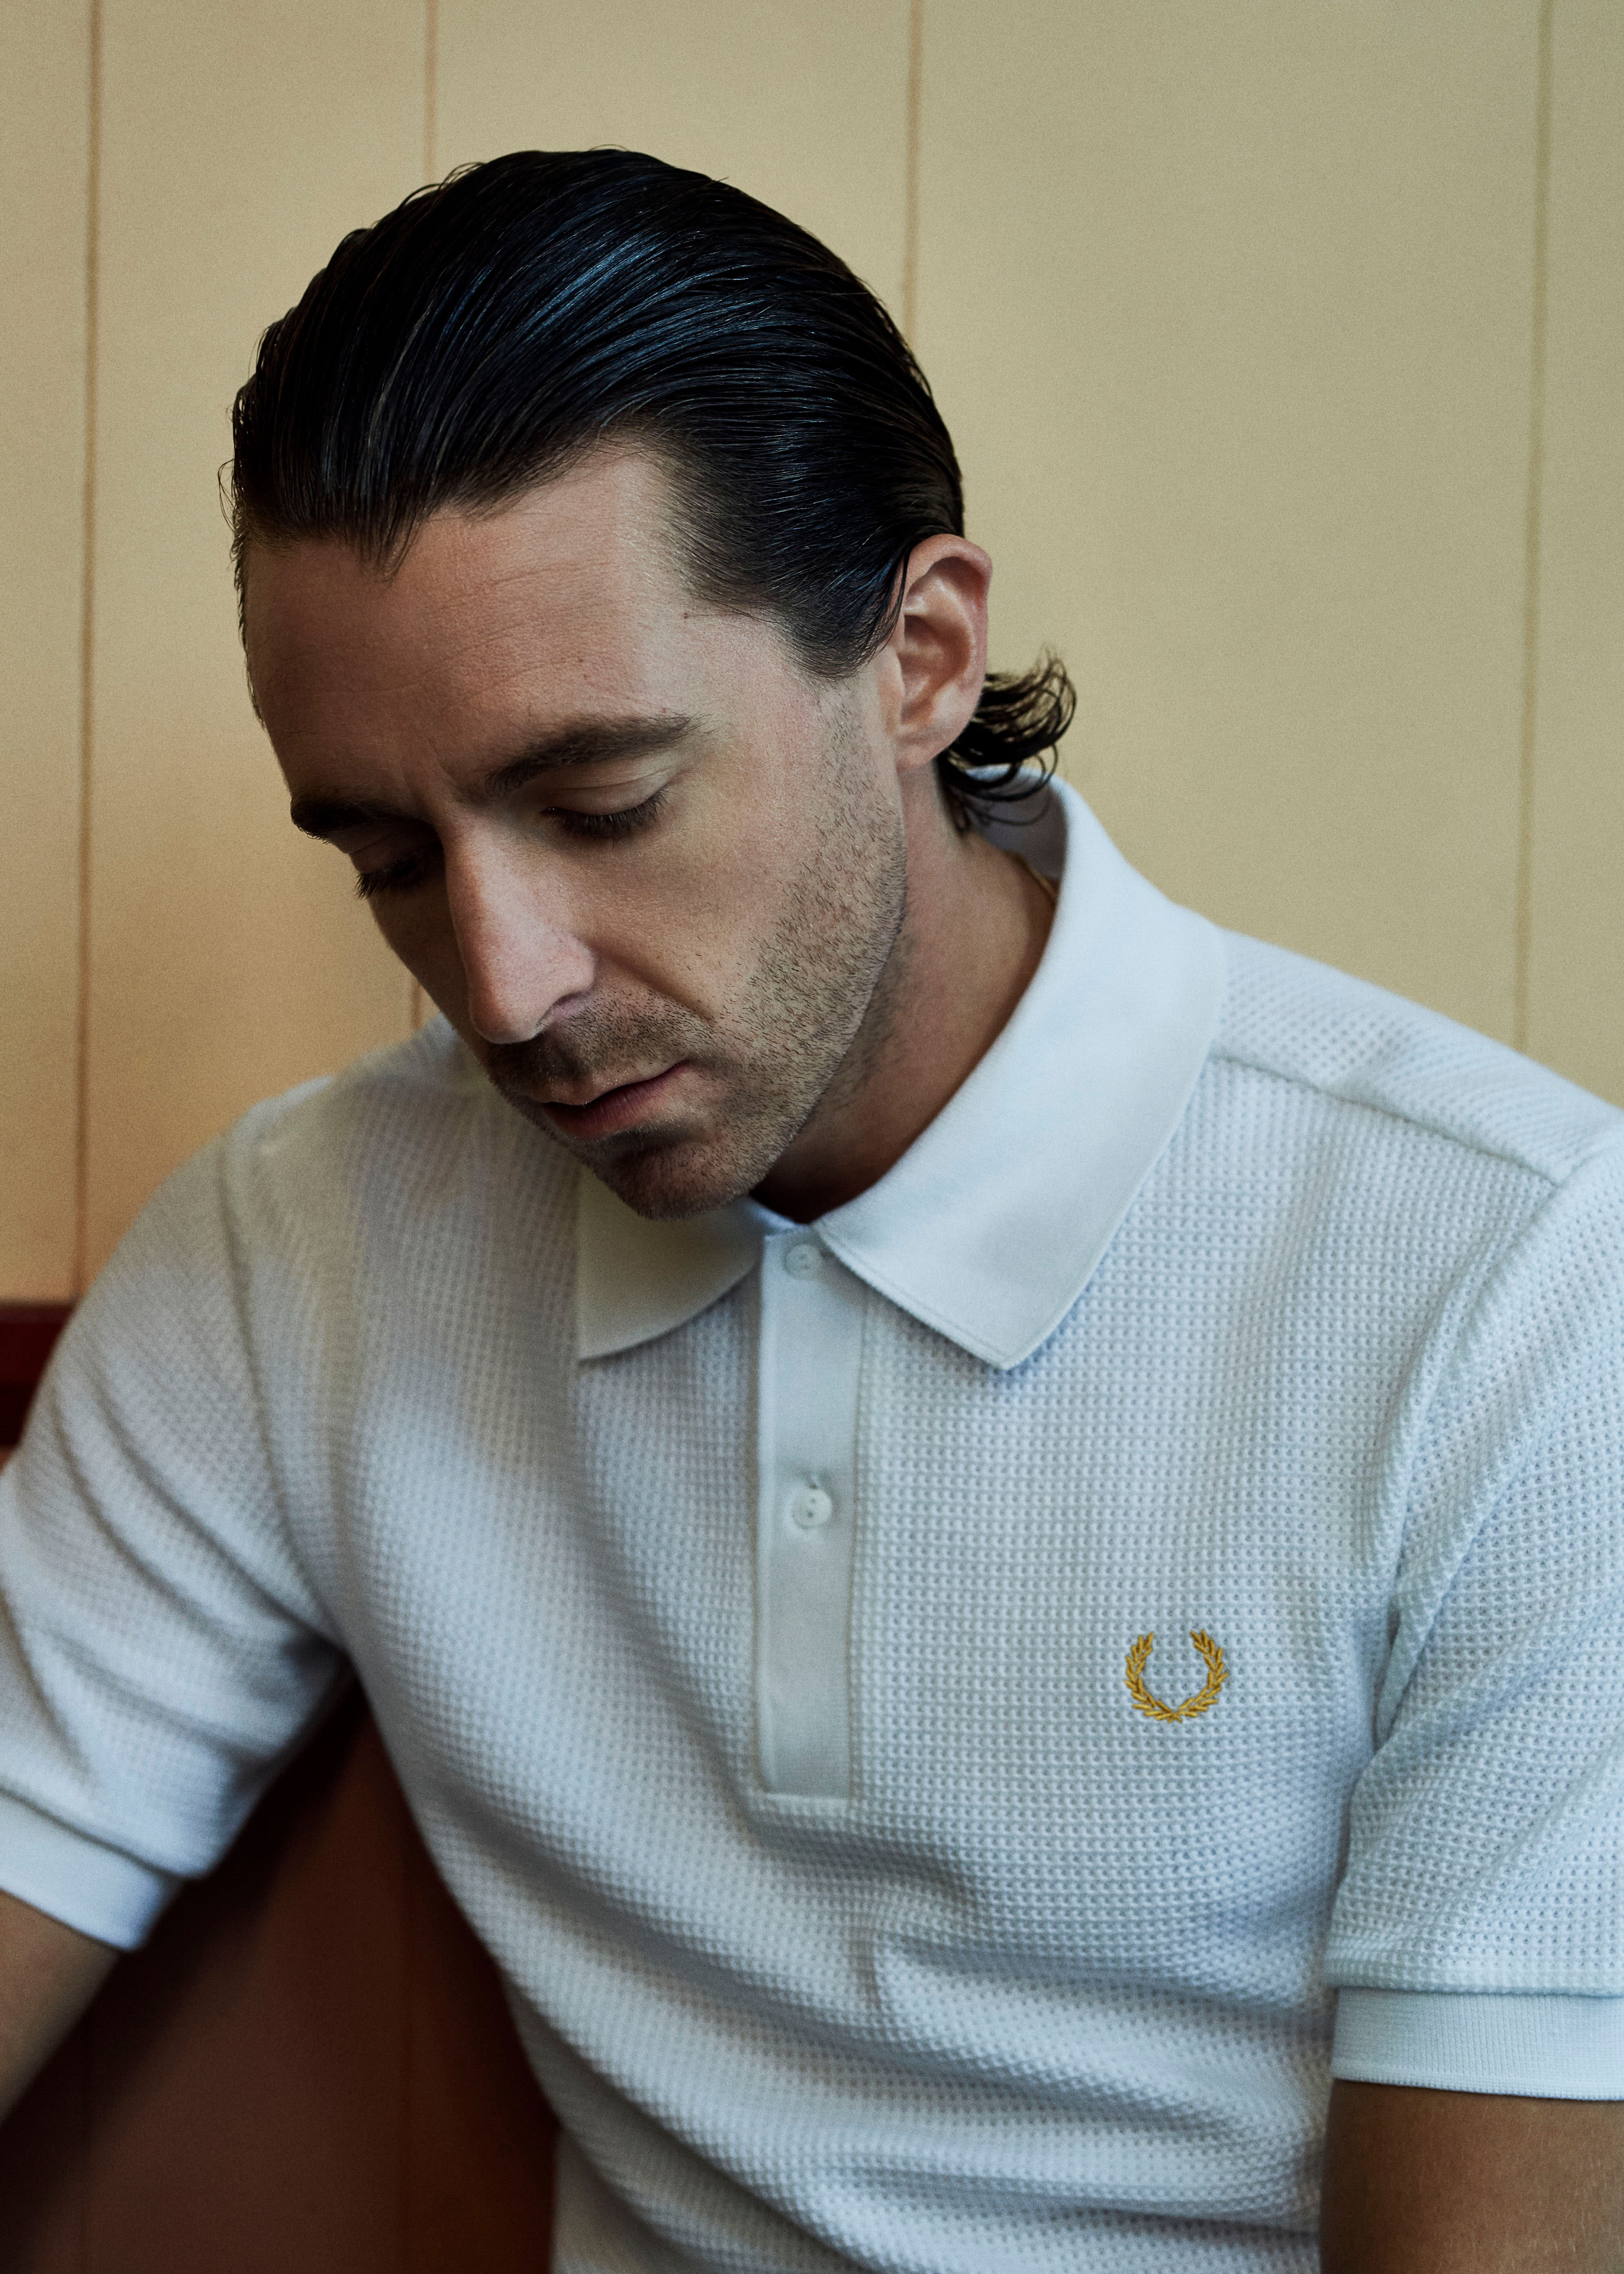 fredperrymiles2